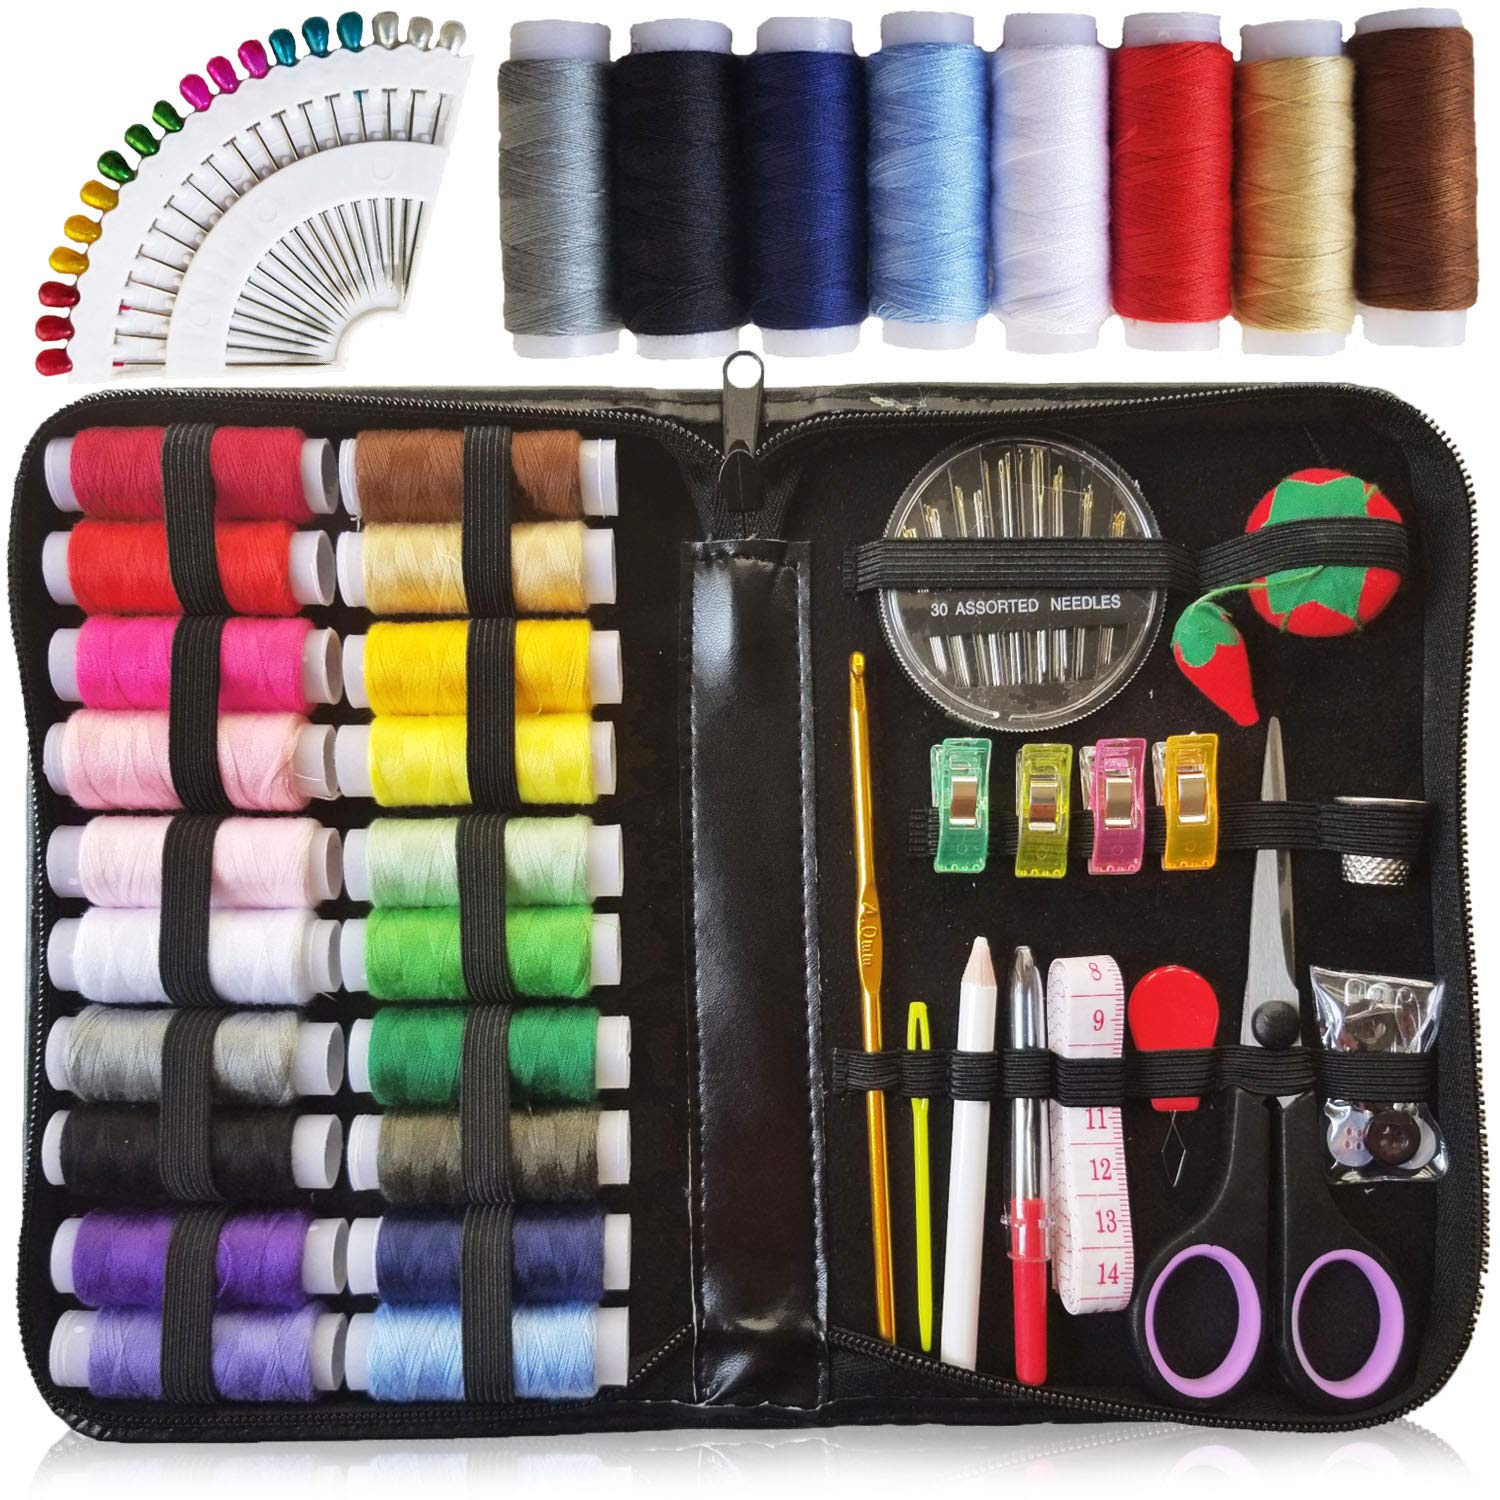 Sewing kit & Crochet kit, DIY Over 100 Premium Sewing and Crocheting Supplies, Free Extra Knitting Accessories - Travel Sewing kit, for Beginners, Emergency, Kids, Summer Campers and Home uppex usa